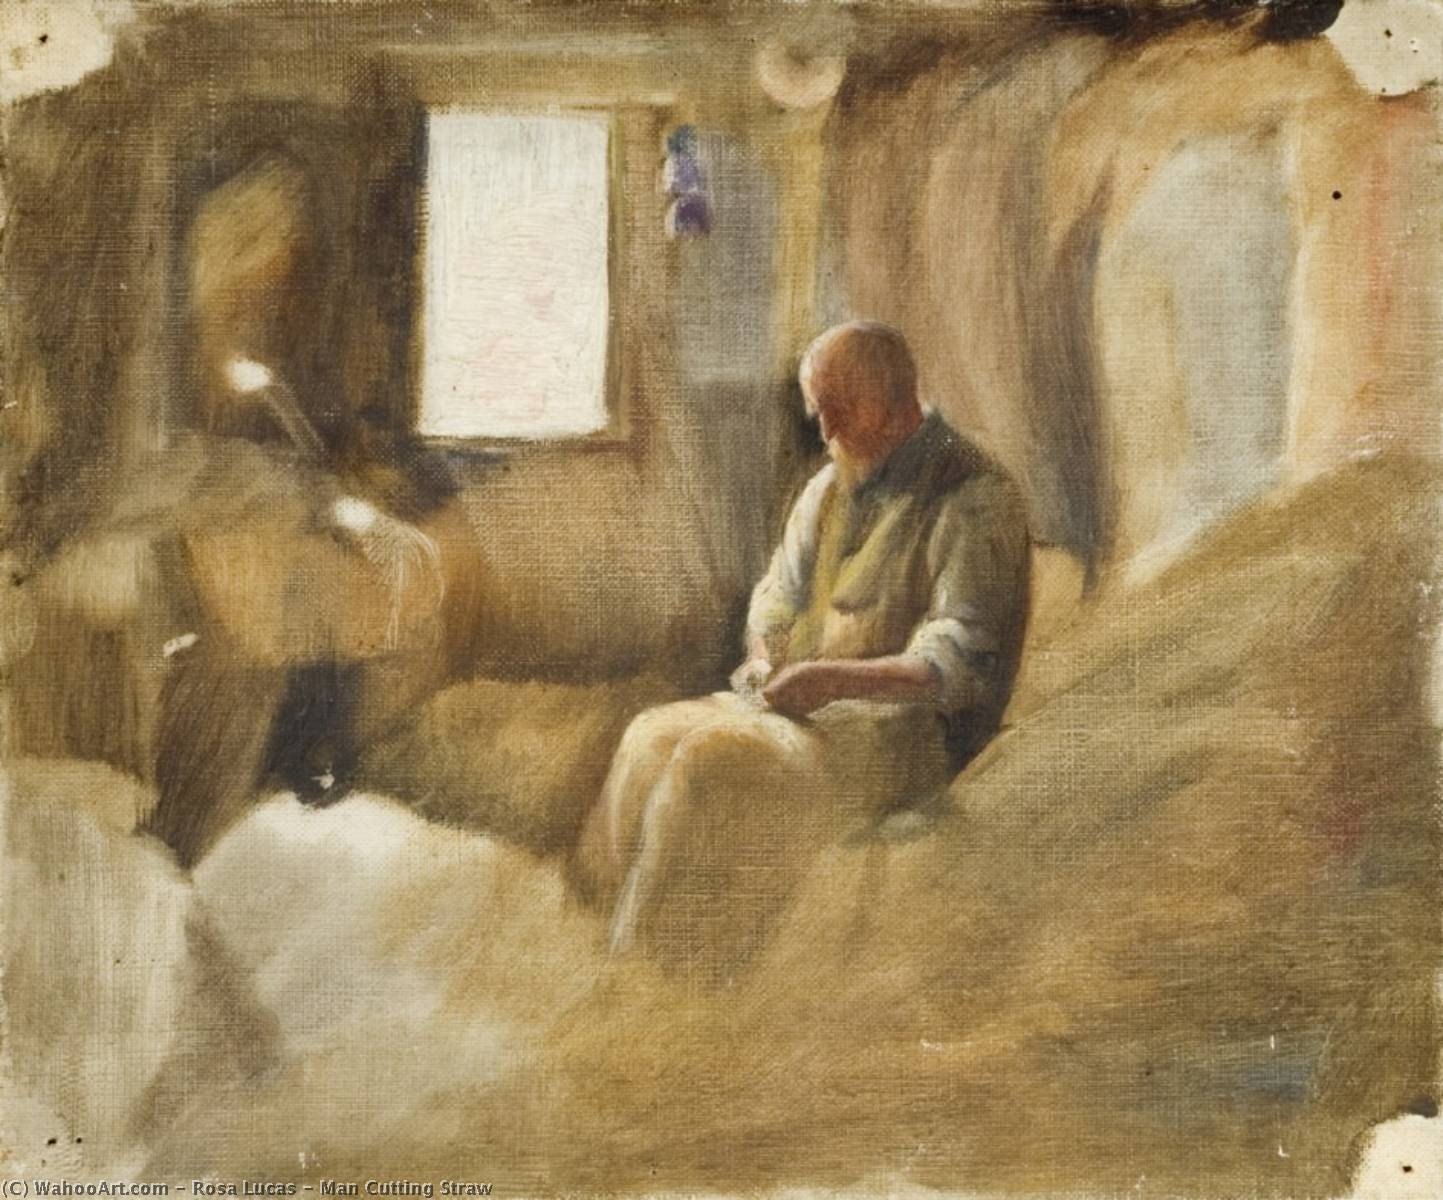 Man Cutting Straw, Oil On Canvas by Rosa Lucas